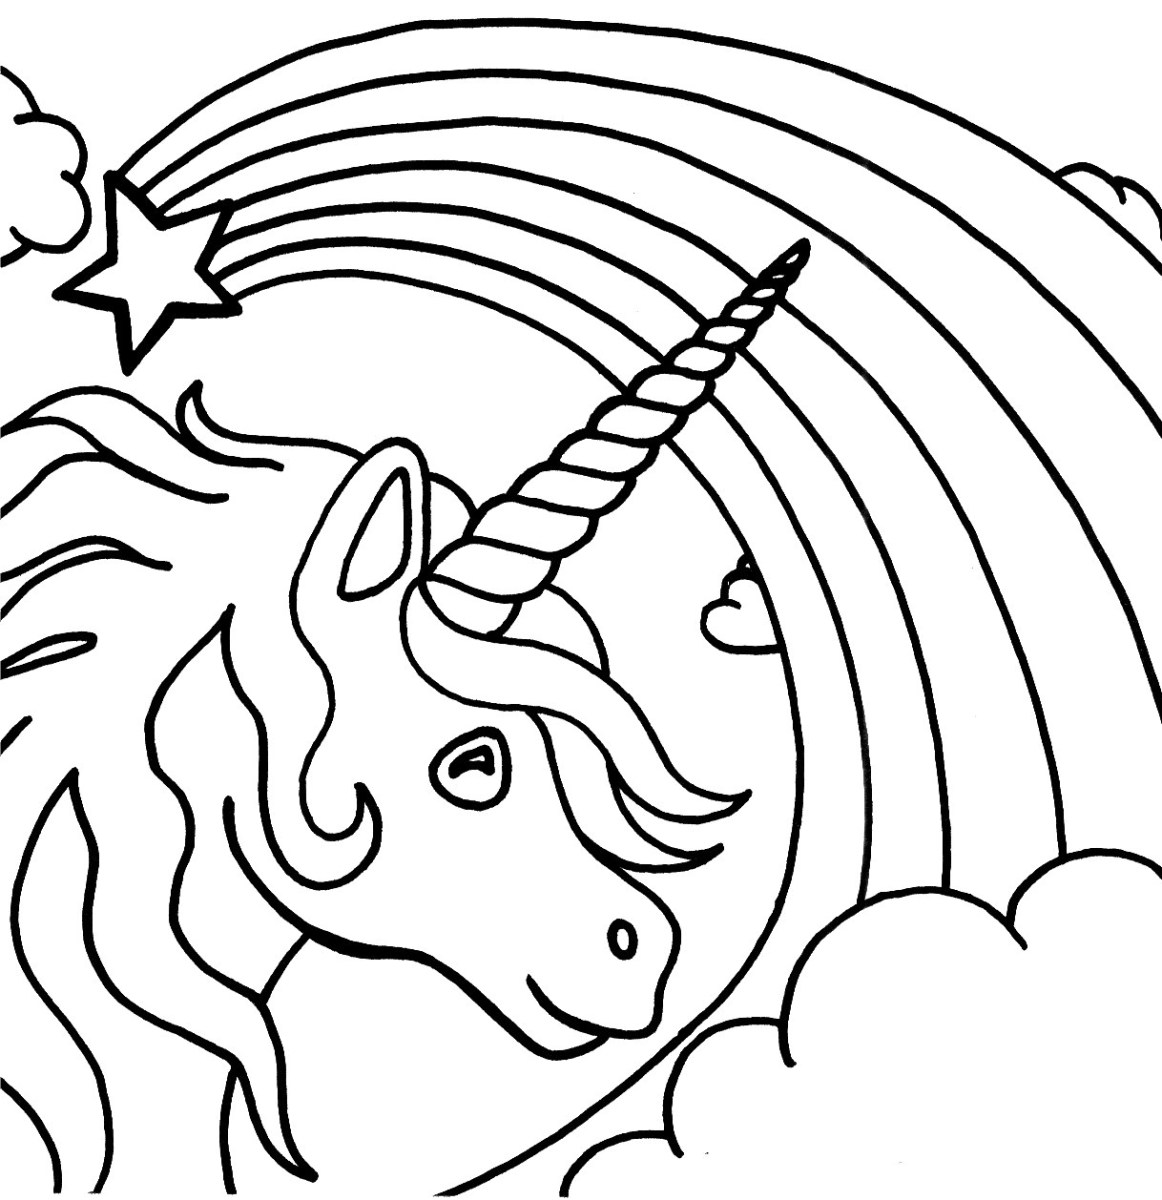 Coloring Book Free Printables For Preschoolers Picture ... | 1200x1162